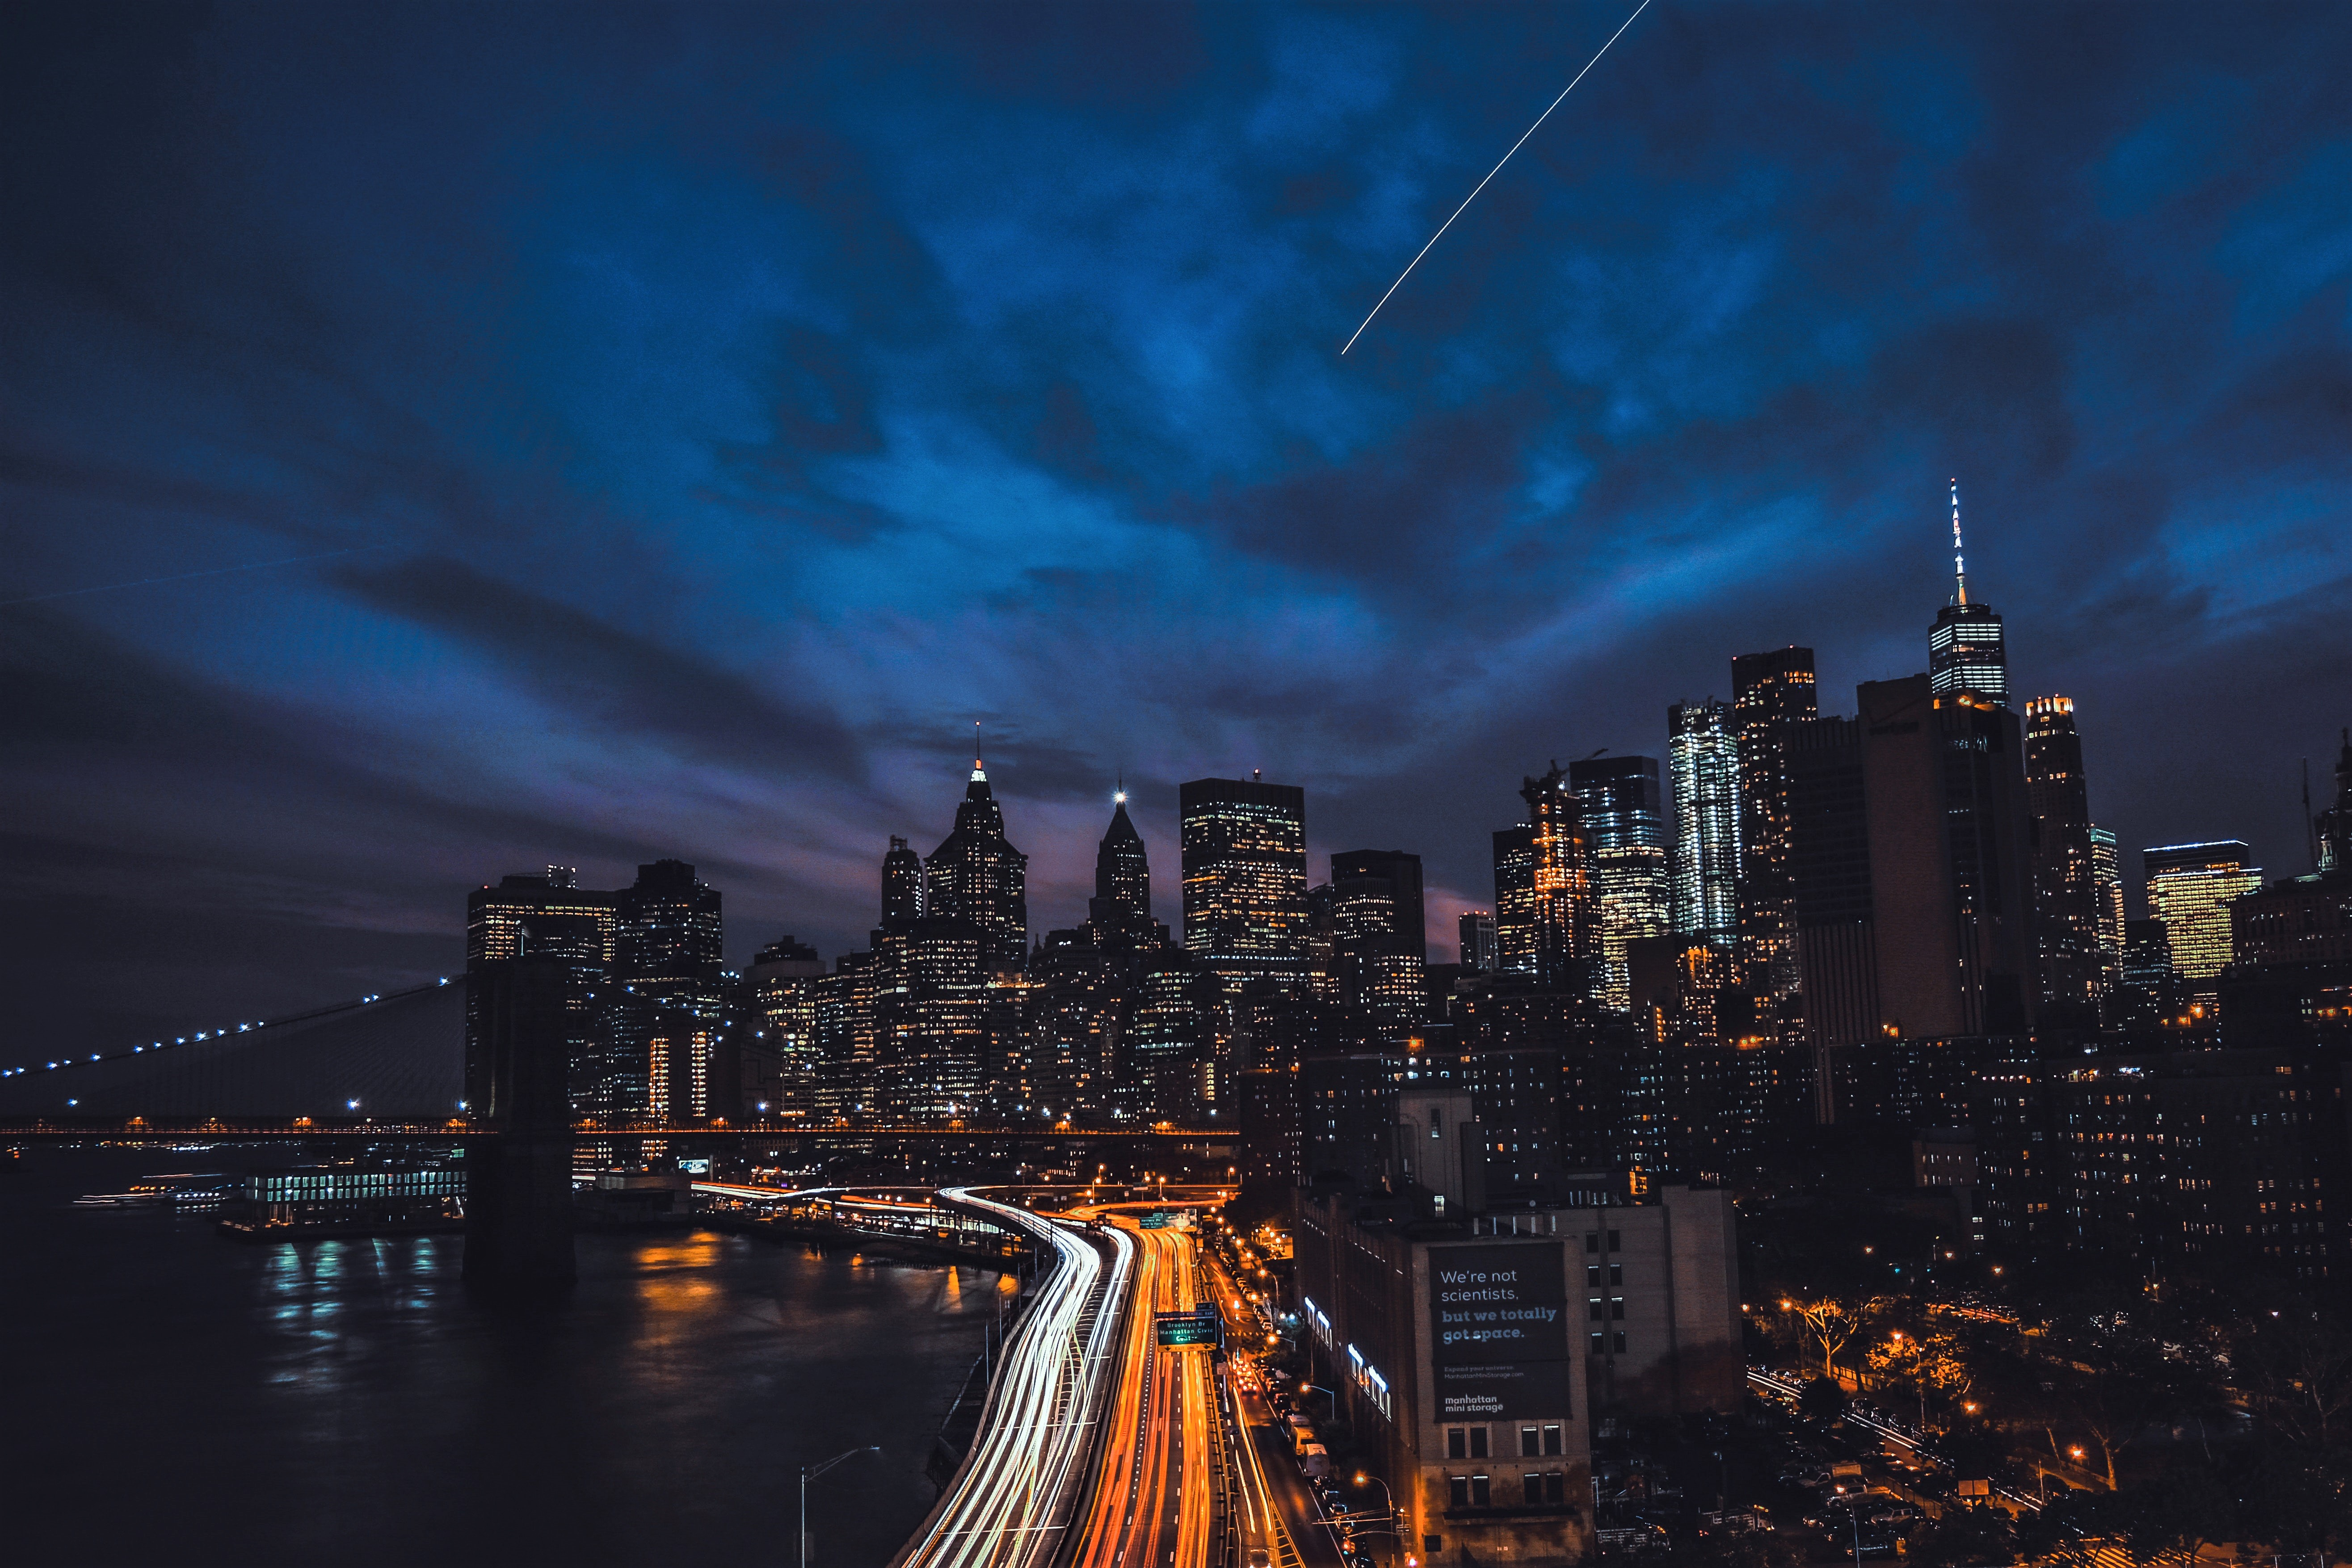 Night In New York City 5k Retina Ultra Hd Wallpaper Background Image 5263x3509 Id 933989 Wallpaper Abyss